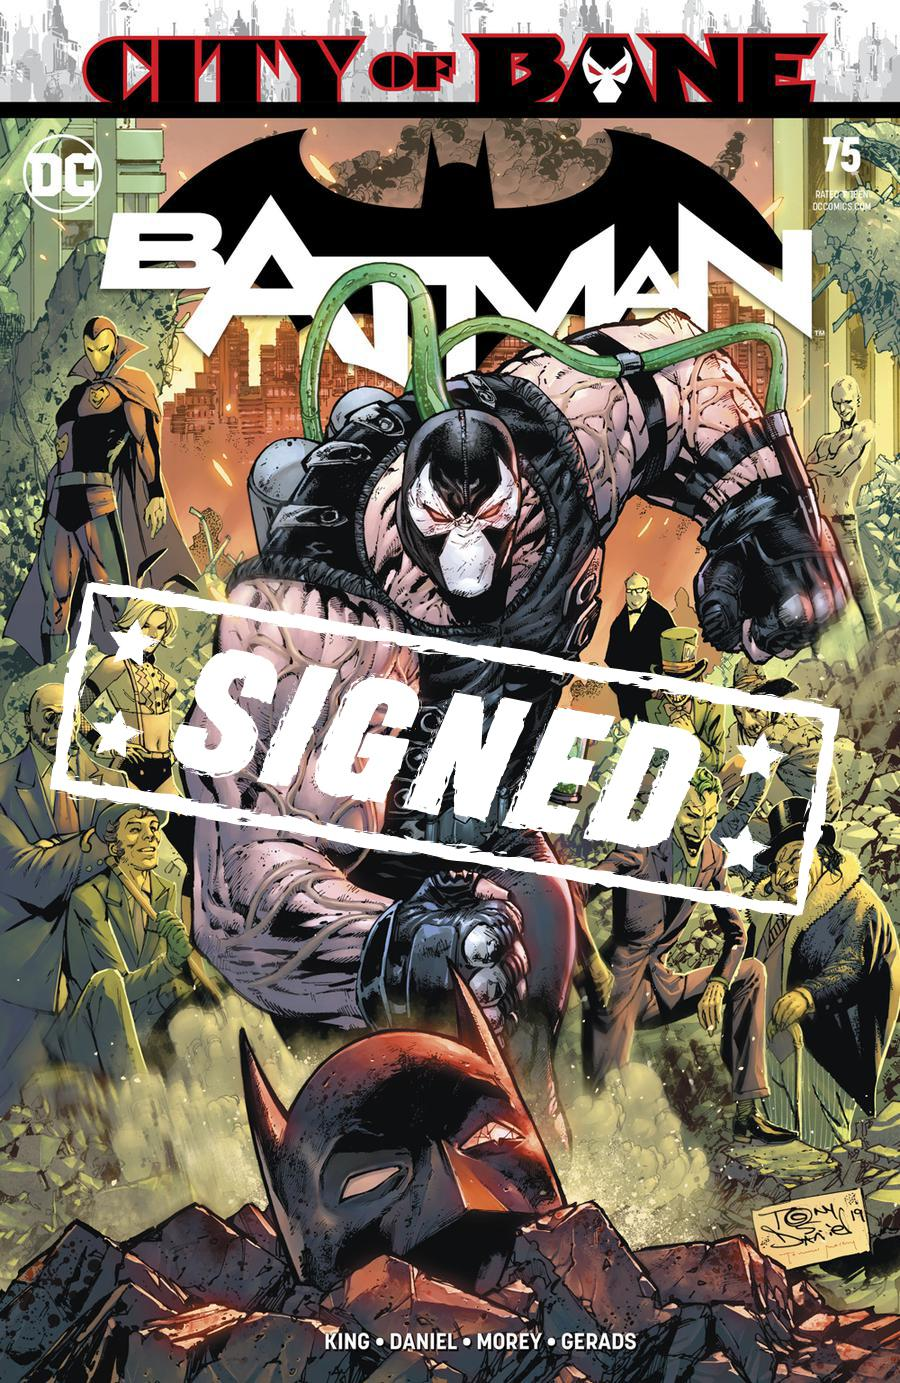 Batman Vol 3 #75 Cover D Regular Tony S Daniel Cover Signed By Tom King (Year Of The Villain The Offer Tie-In)